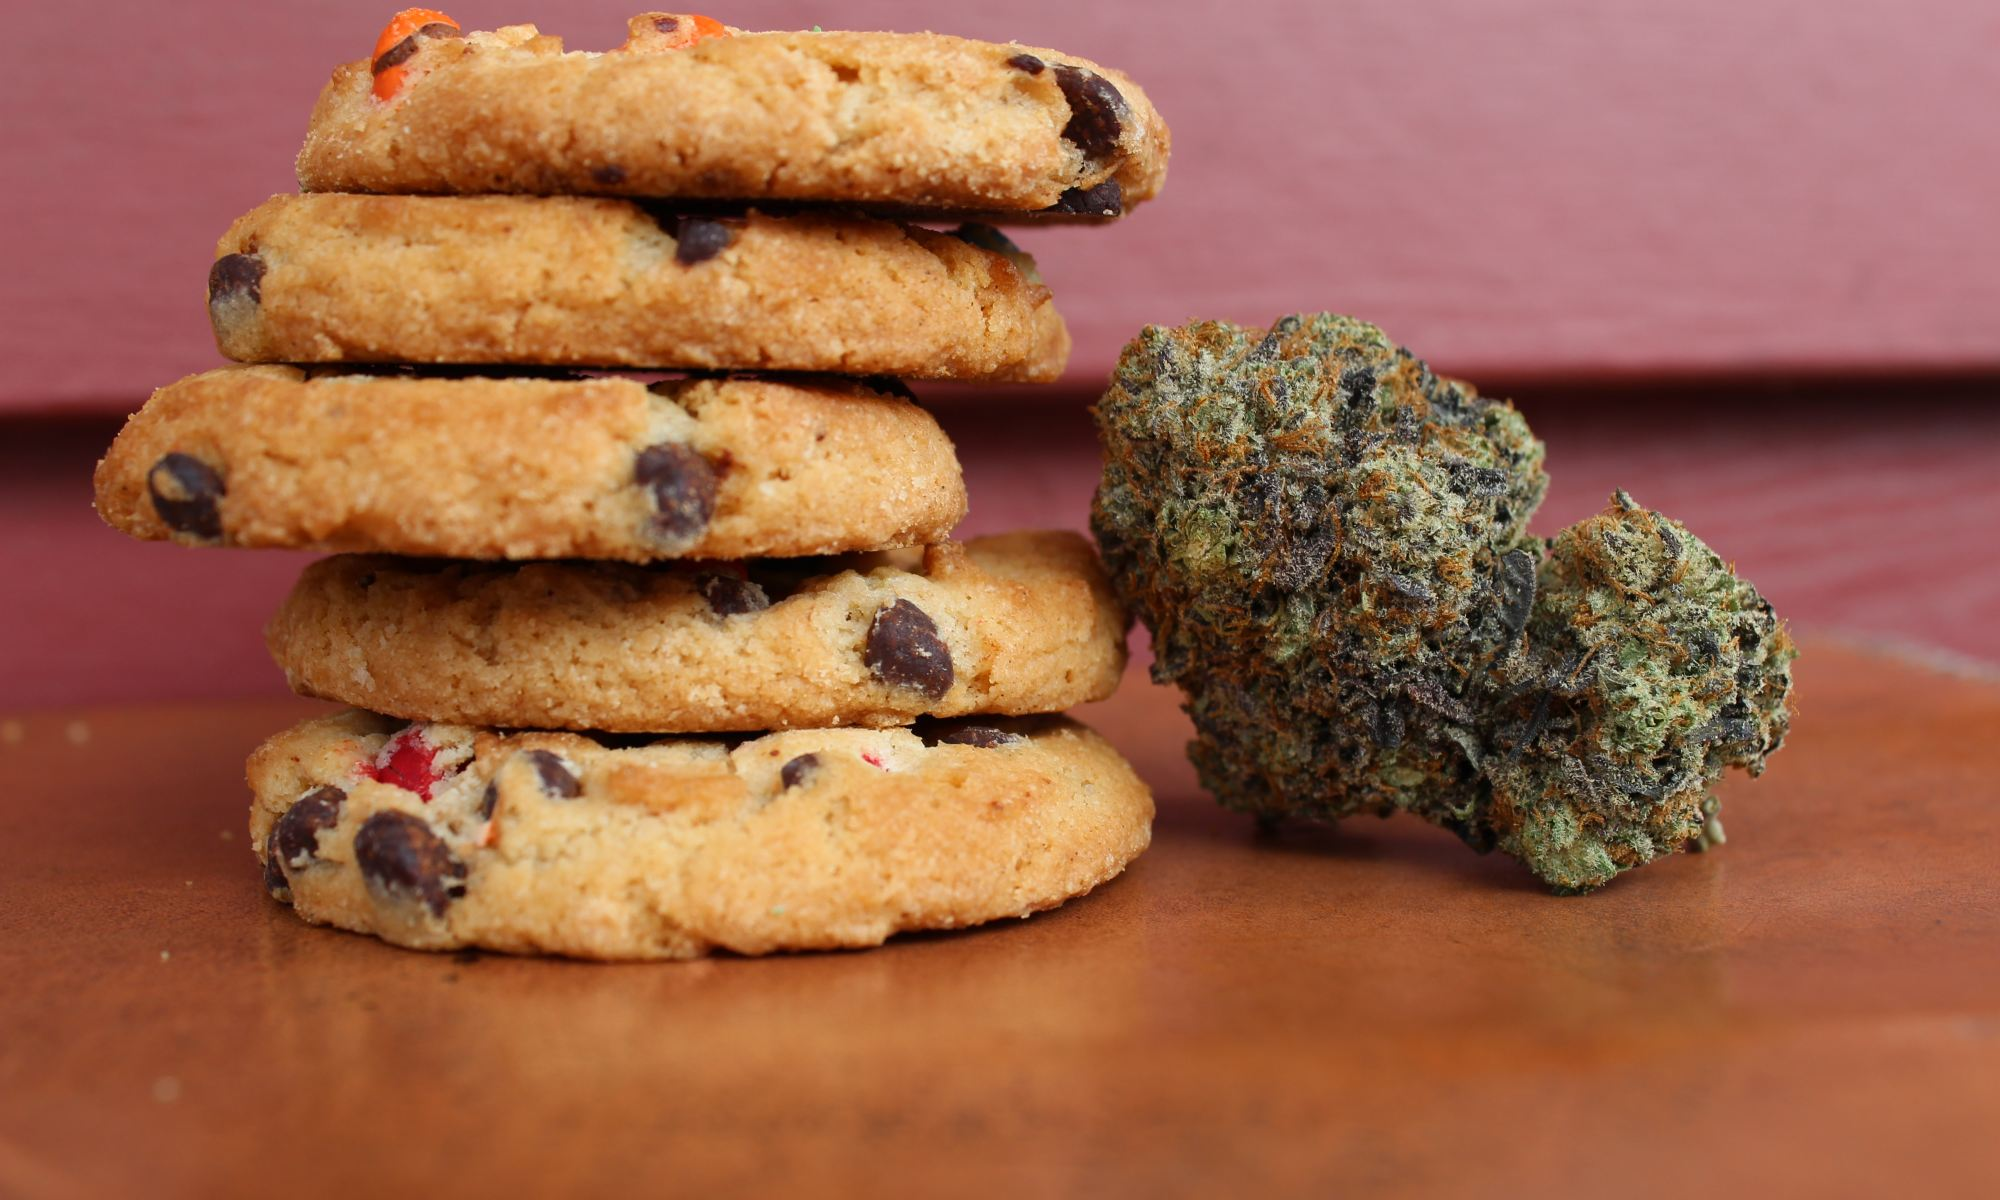 Chocolate chip marijuana cookies and big green bud